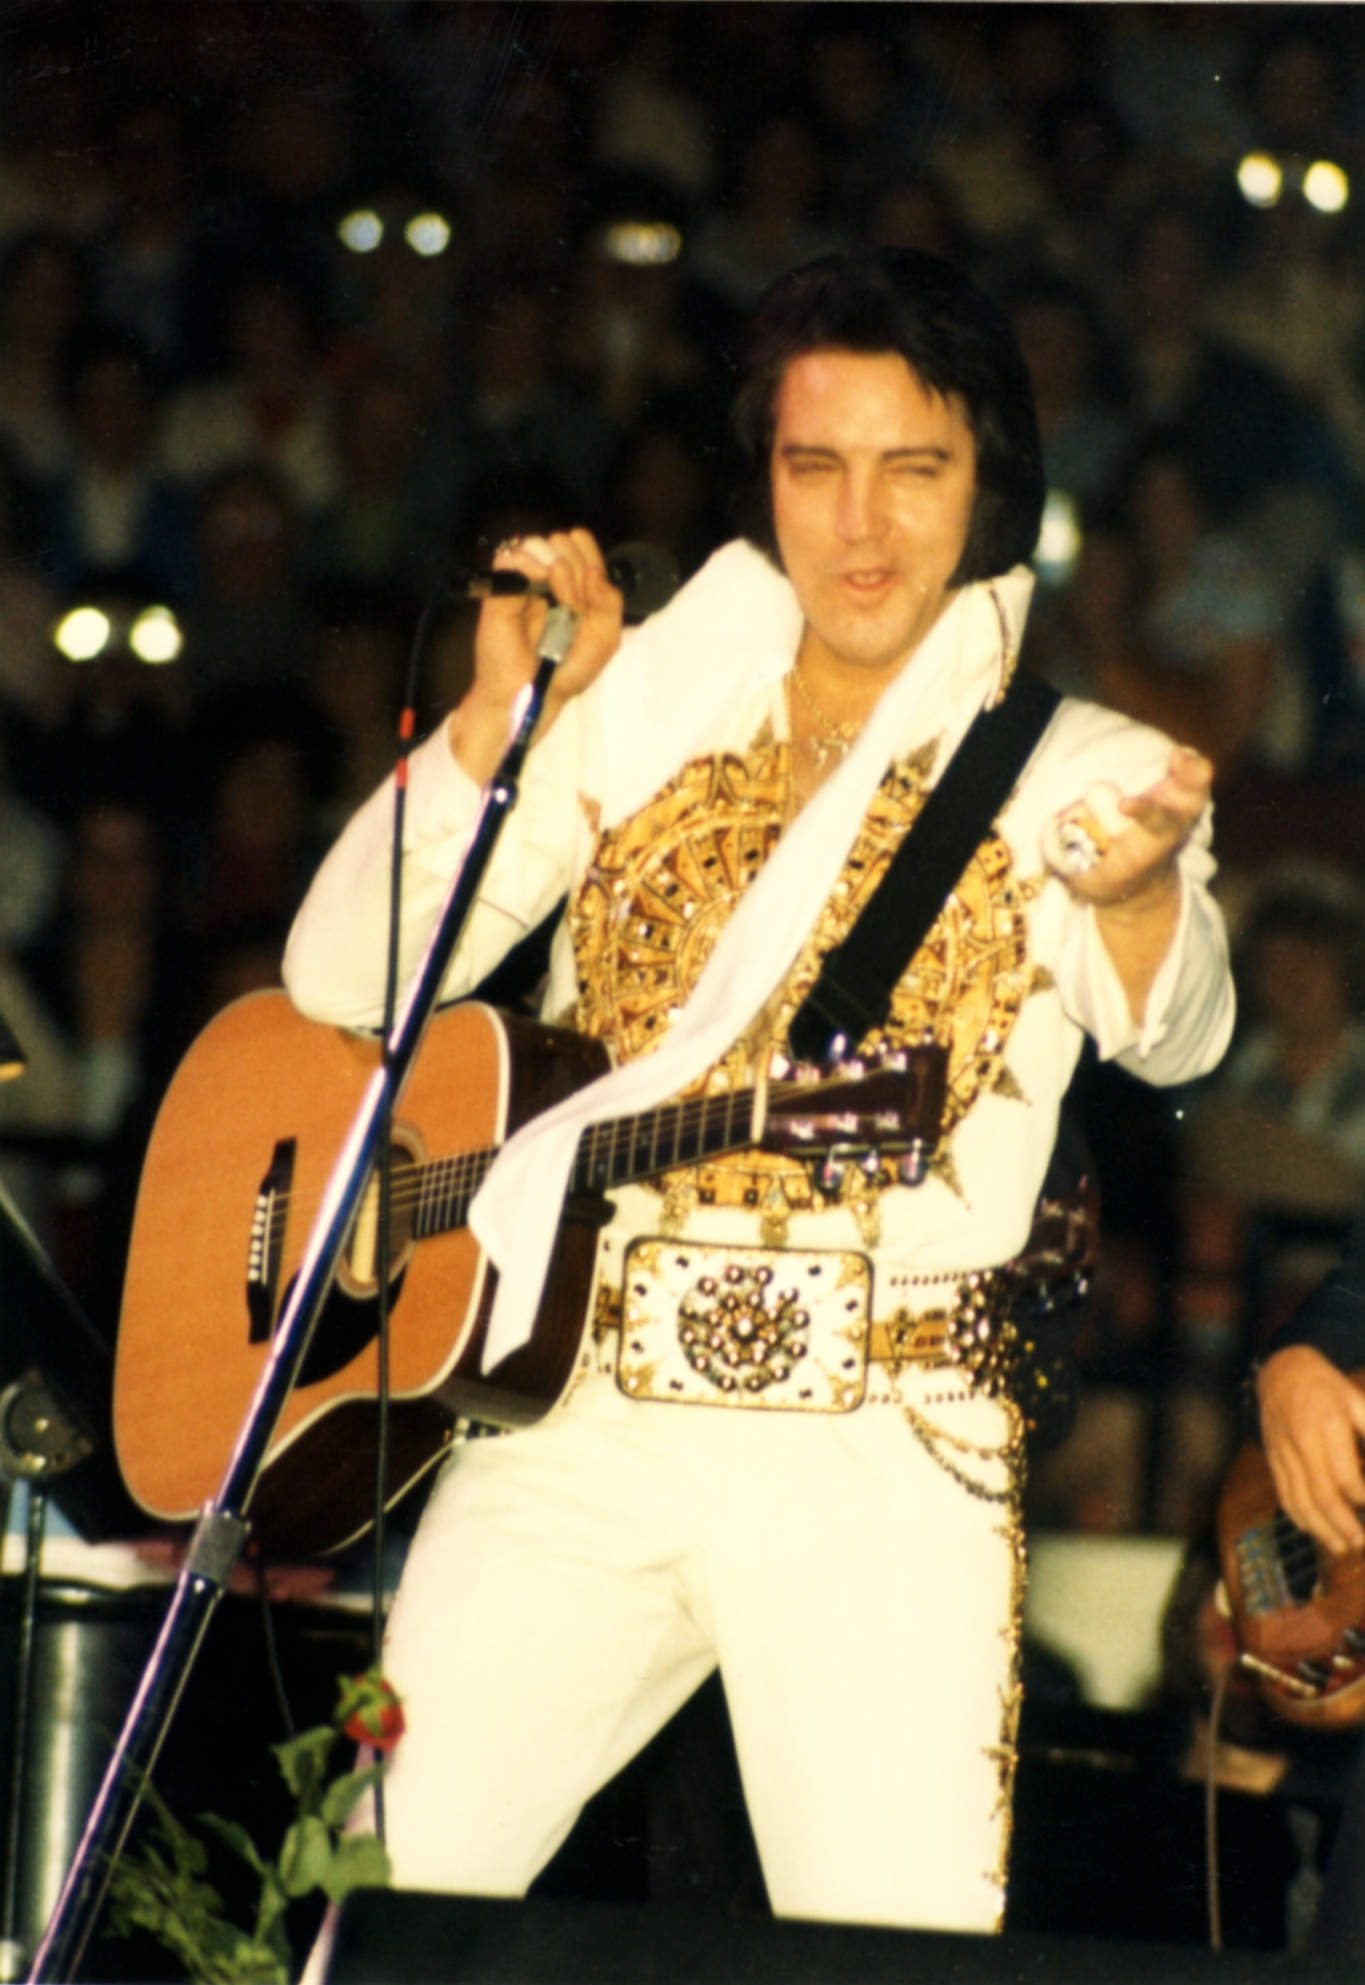 https://i0.wp.com/www.elvisconcerts.com/pictures/s77050204.jpg